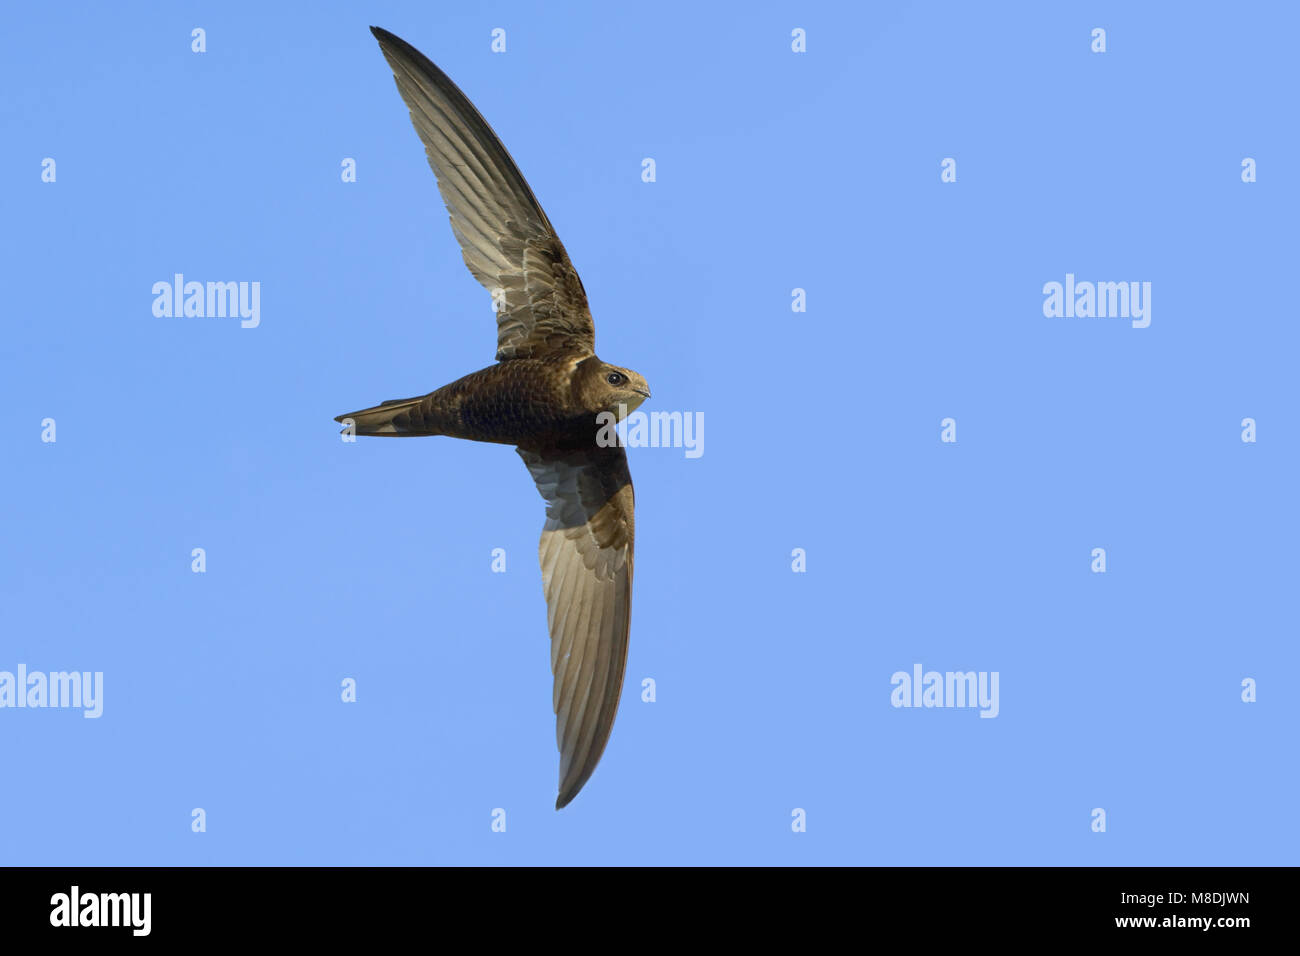 Common Swift flying; Gierzwaluw vliegend - Stock Image